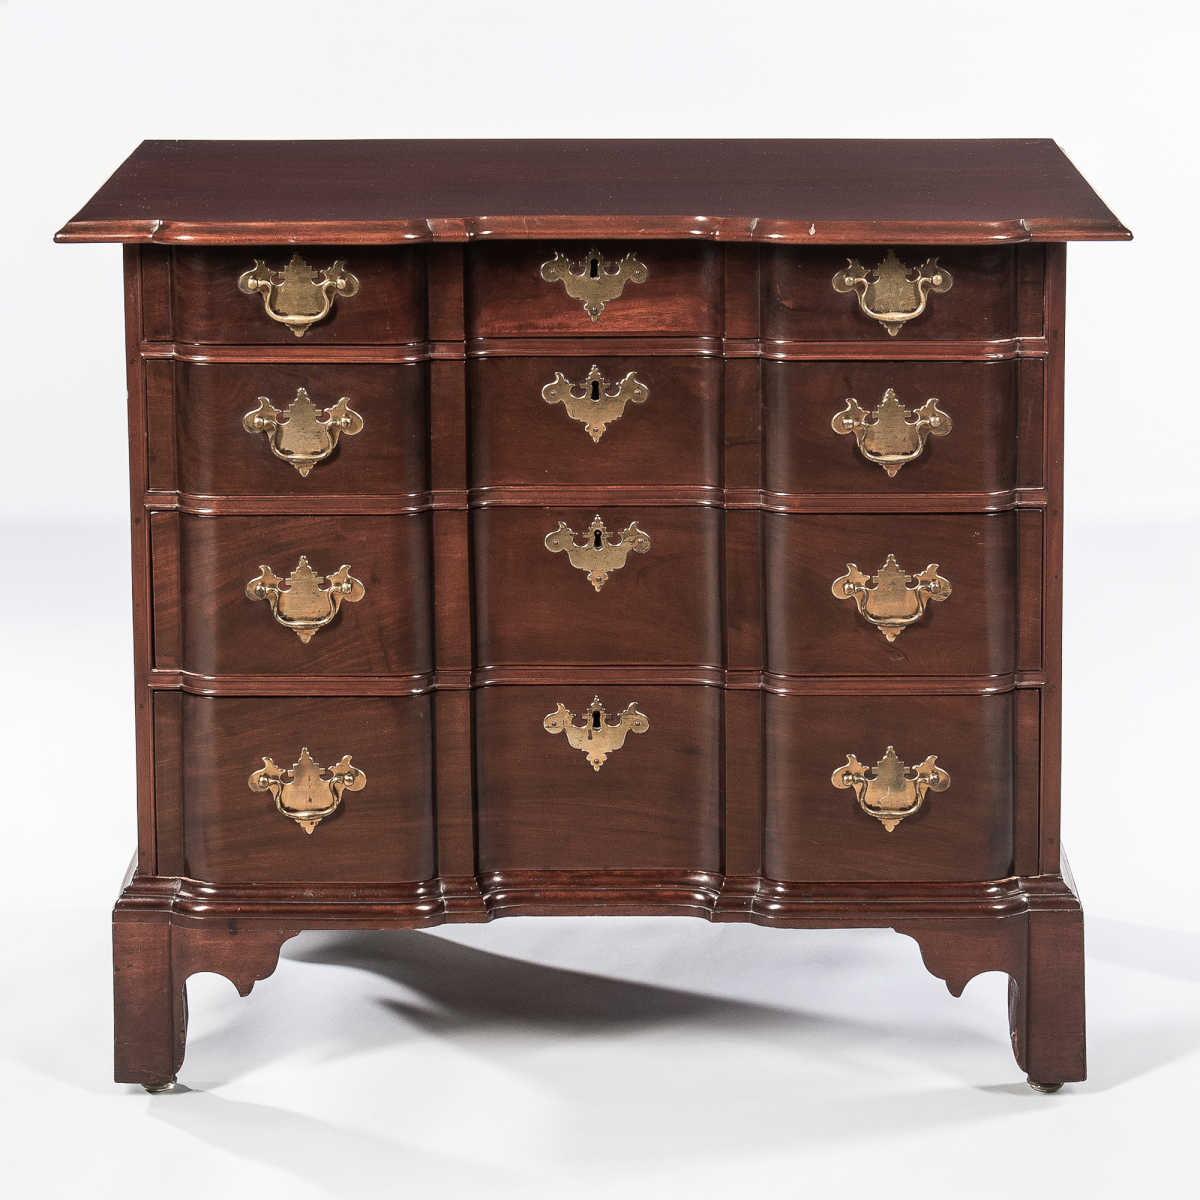 Chippendale Carved Mahogany Block-front Chest of Drawers, Massachusetts, c. 1760-80